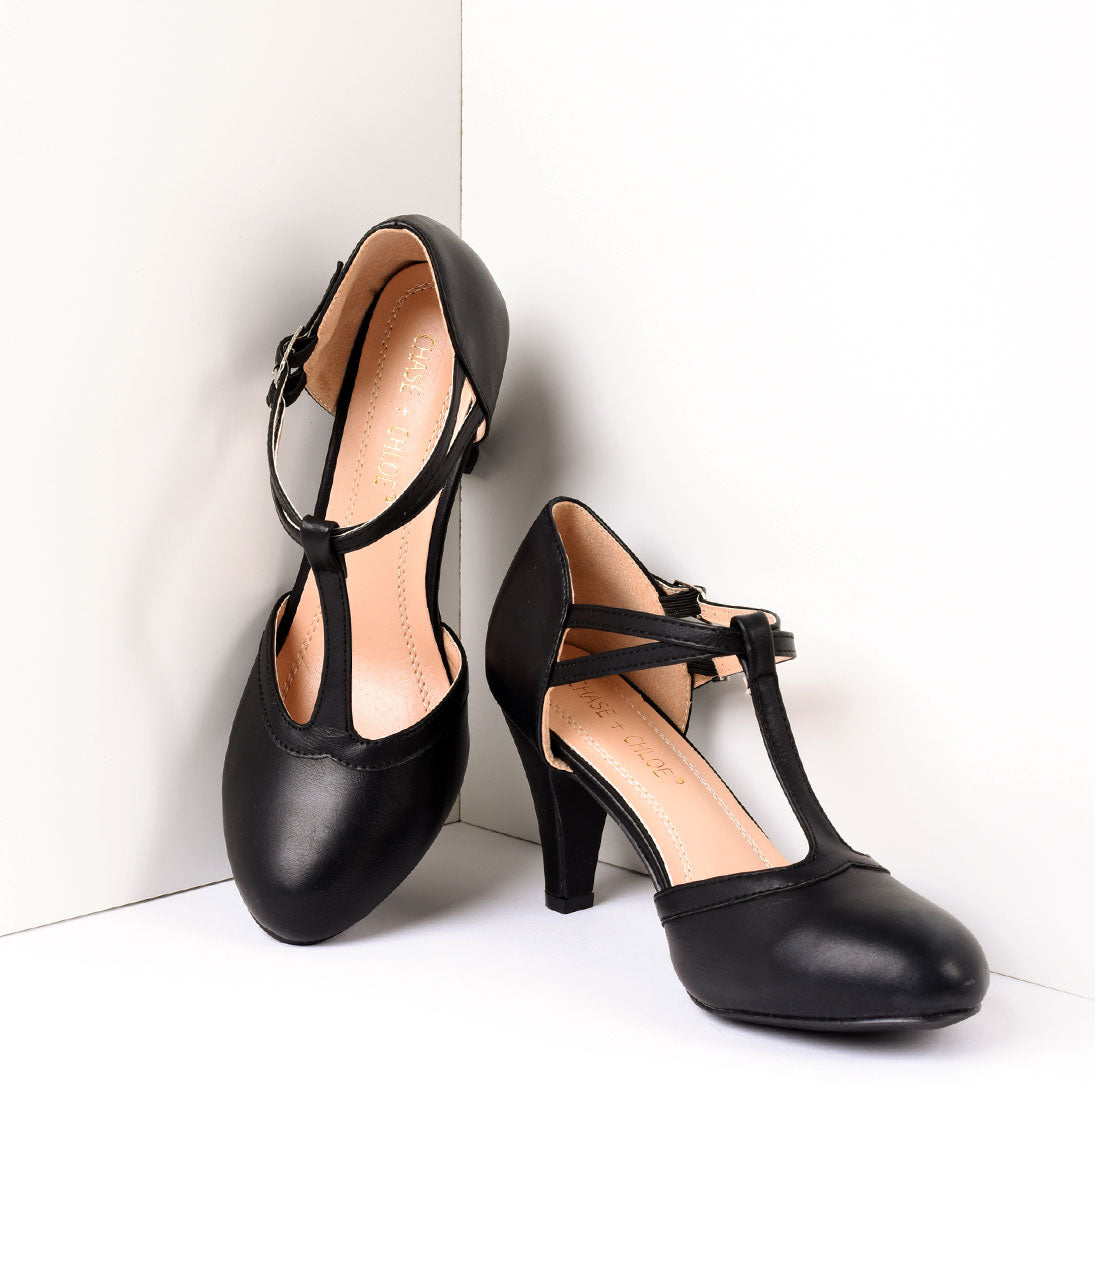 Flapper Costume: How to Dress Like a 20s Flapper Girl Vintage Style Black Leatherette Round Toe T-Strap Heels $48.00 AT vintagedancer.com